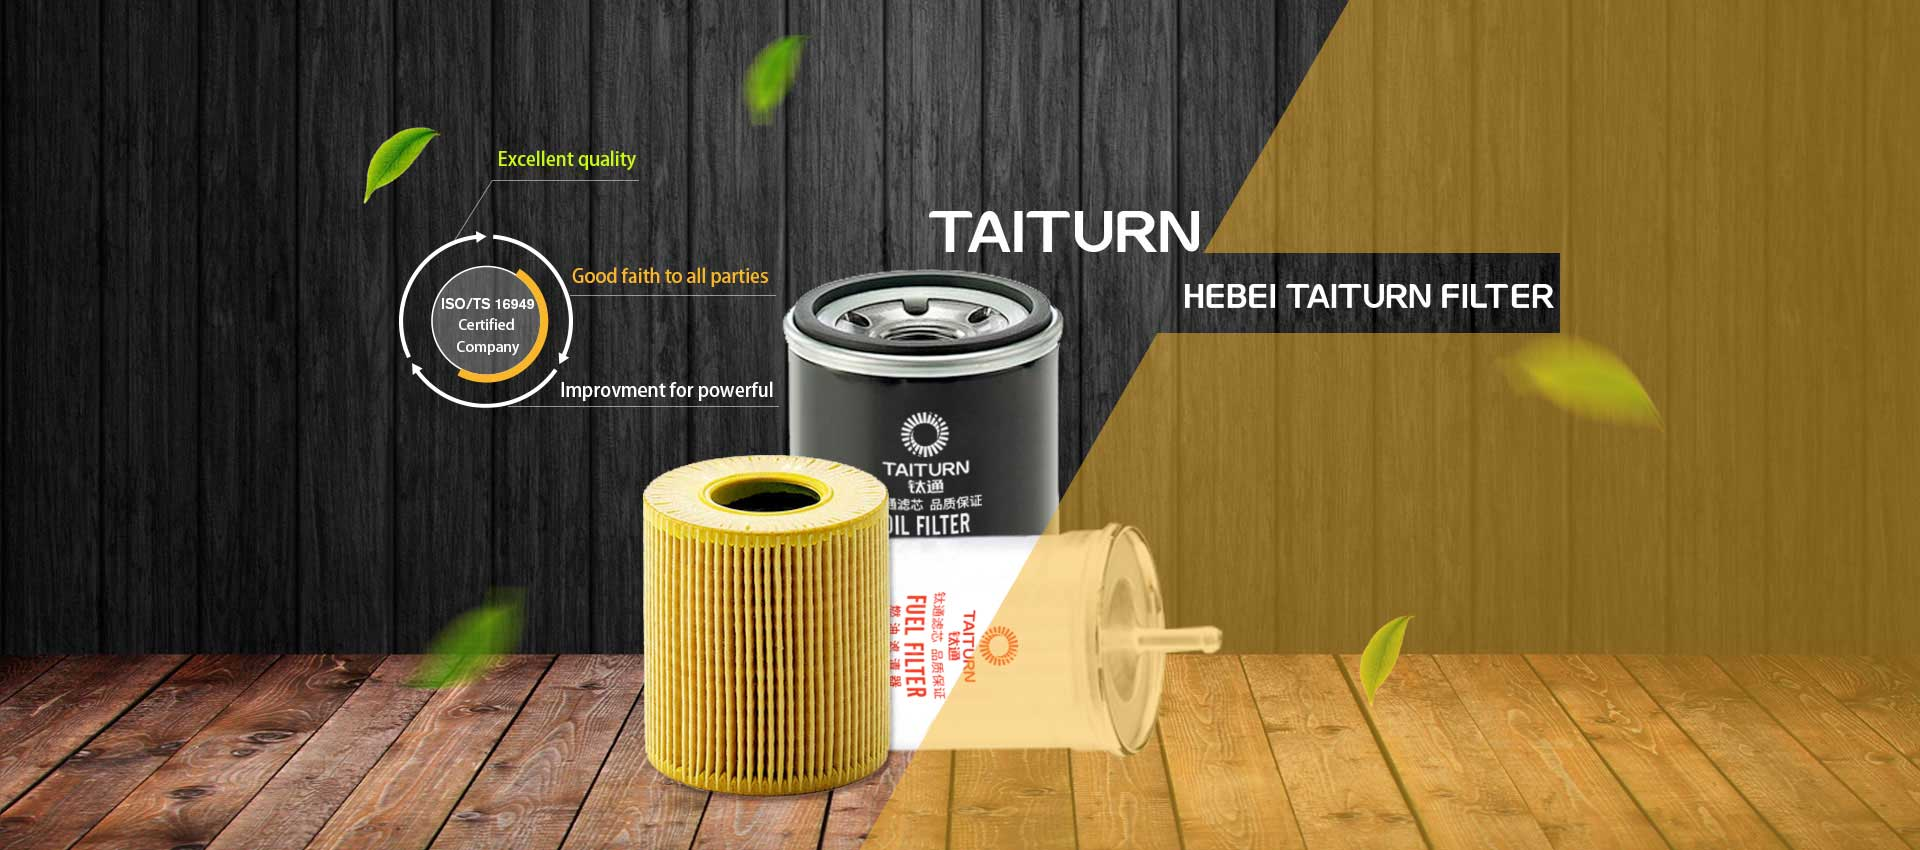 HEBEI TAITURN FILTER CO., LTD